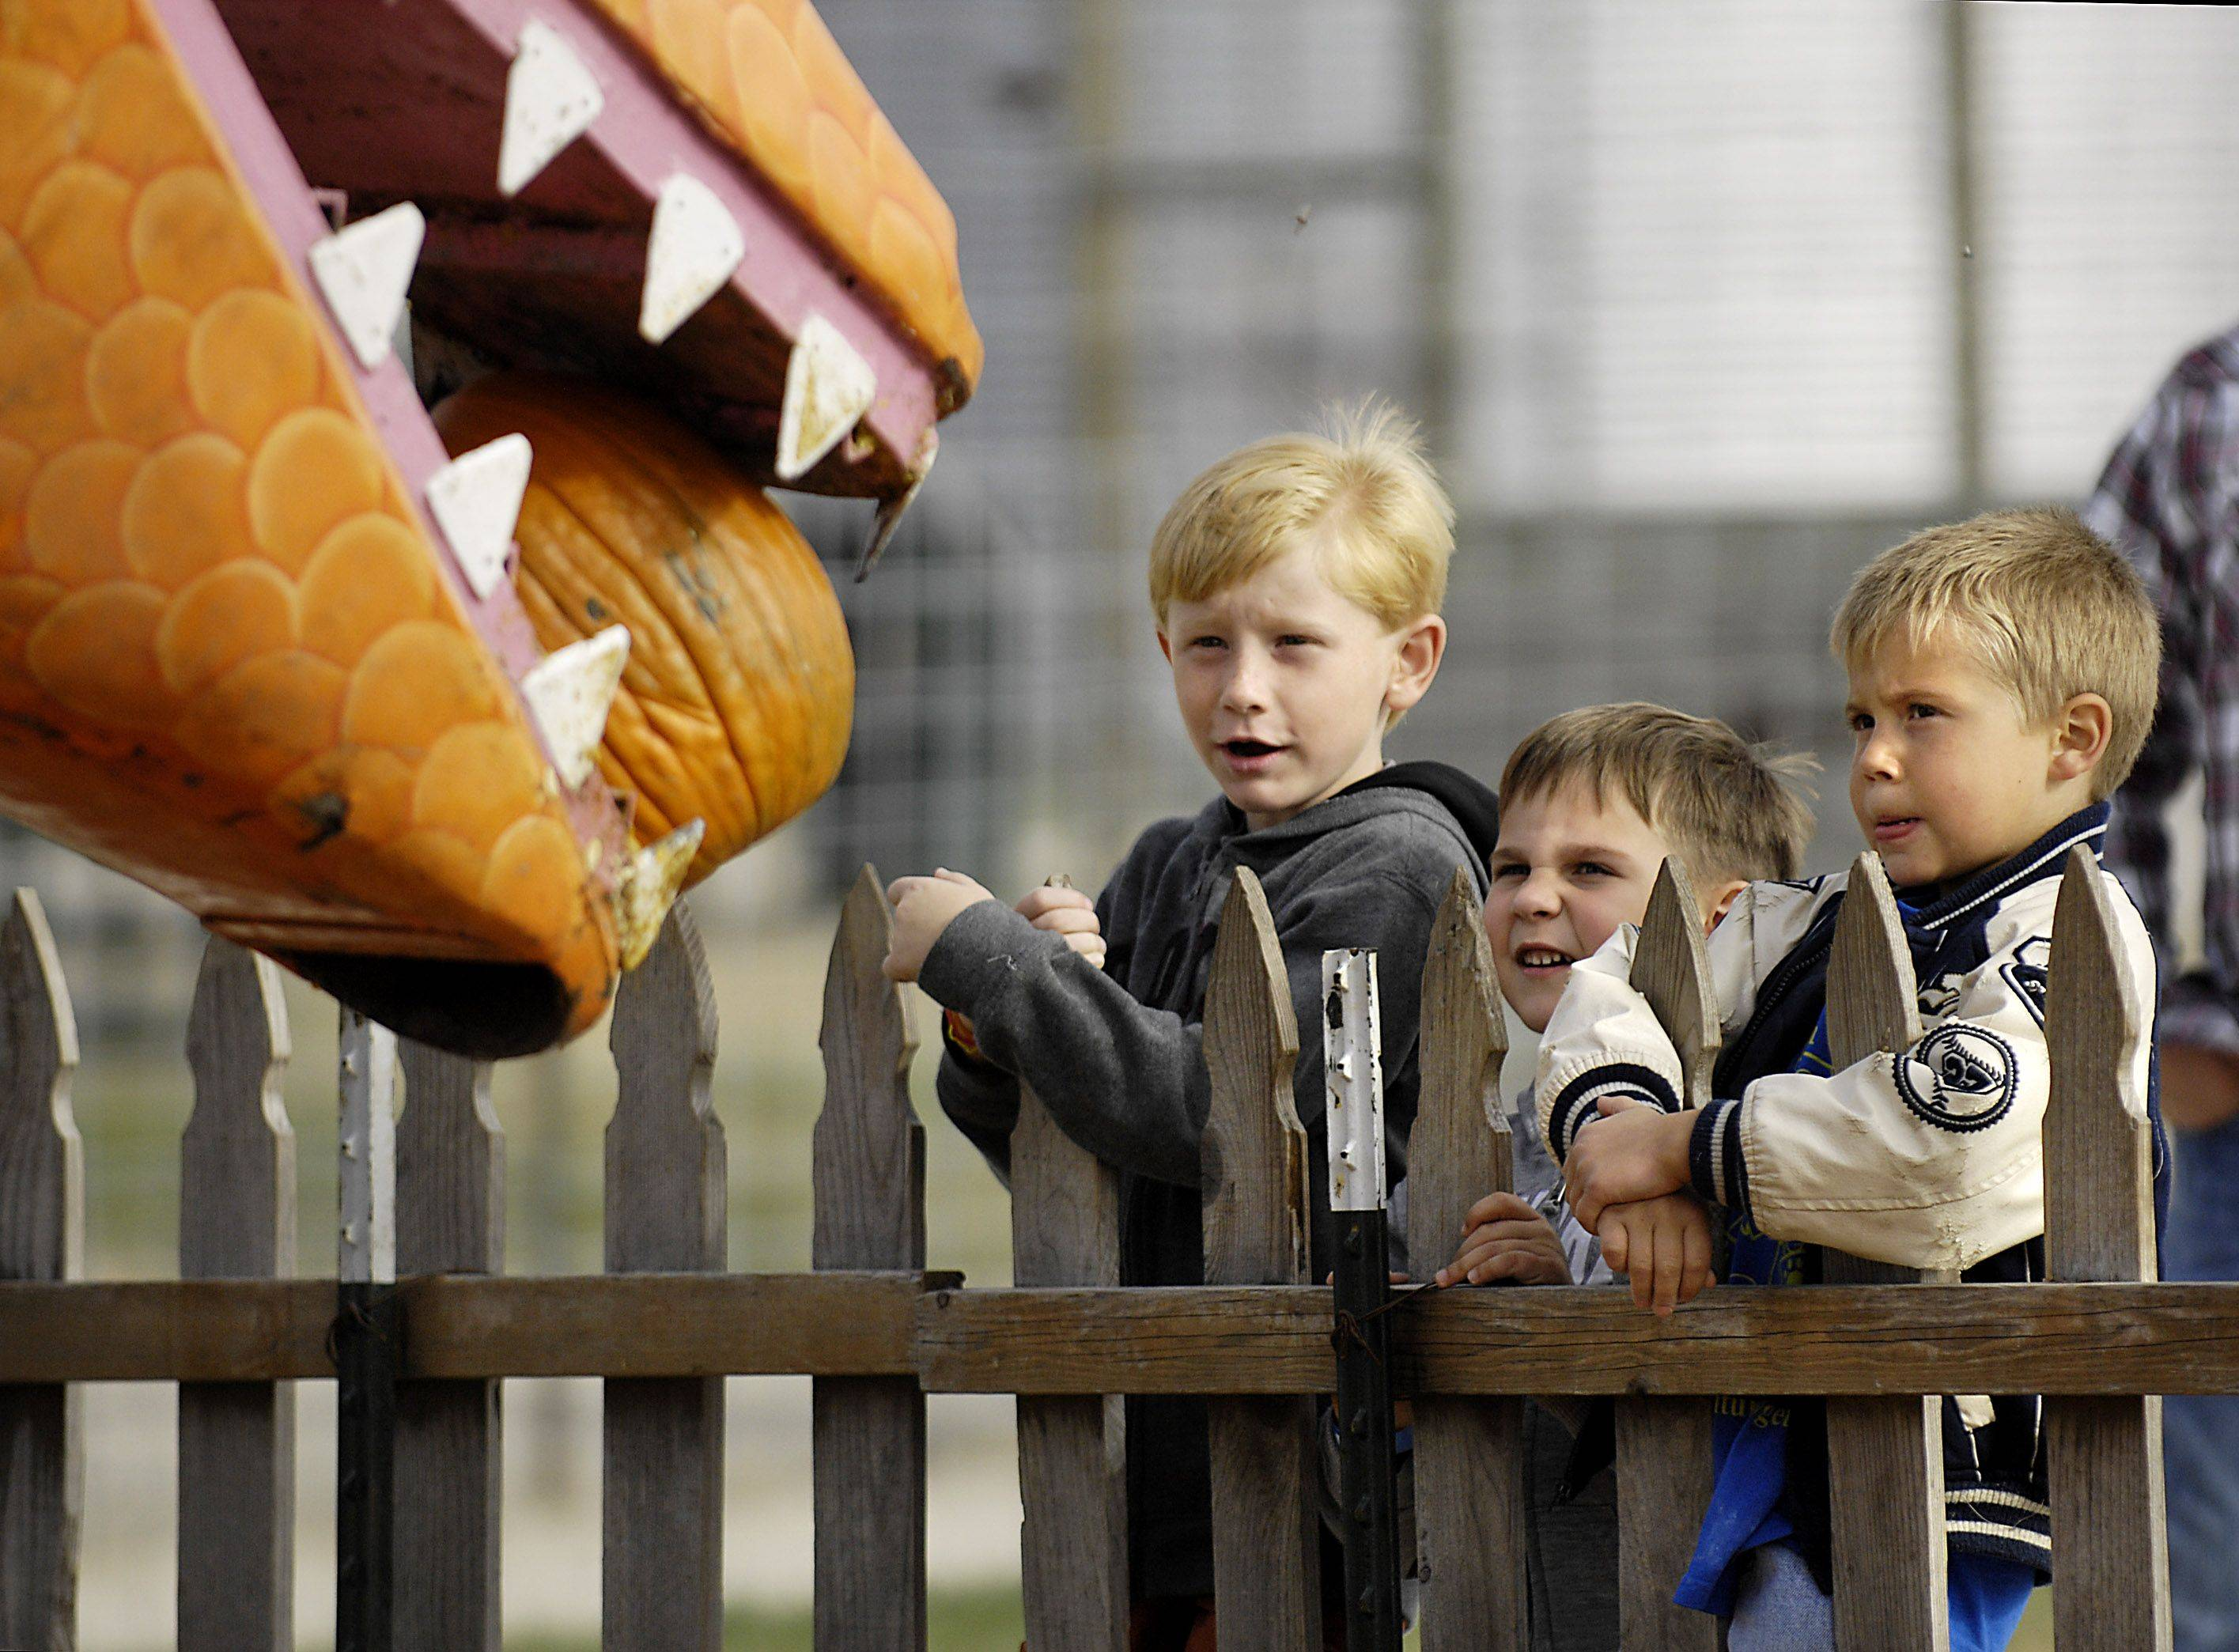 Riley Peppers of Dekalb, Kaleb Jungkans of Sandwich and Ben Hammarberg of Dekalb, all five years old, watch the Pumpkin Eating Dinosaur at Goebberts Pumpkin Farm on Route 47, west of Gilberts Thursday. All the boys have been to the farm in past seasons. The business offers many attractions as well as pumpkin picking.